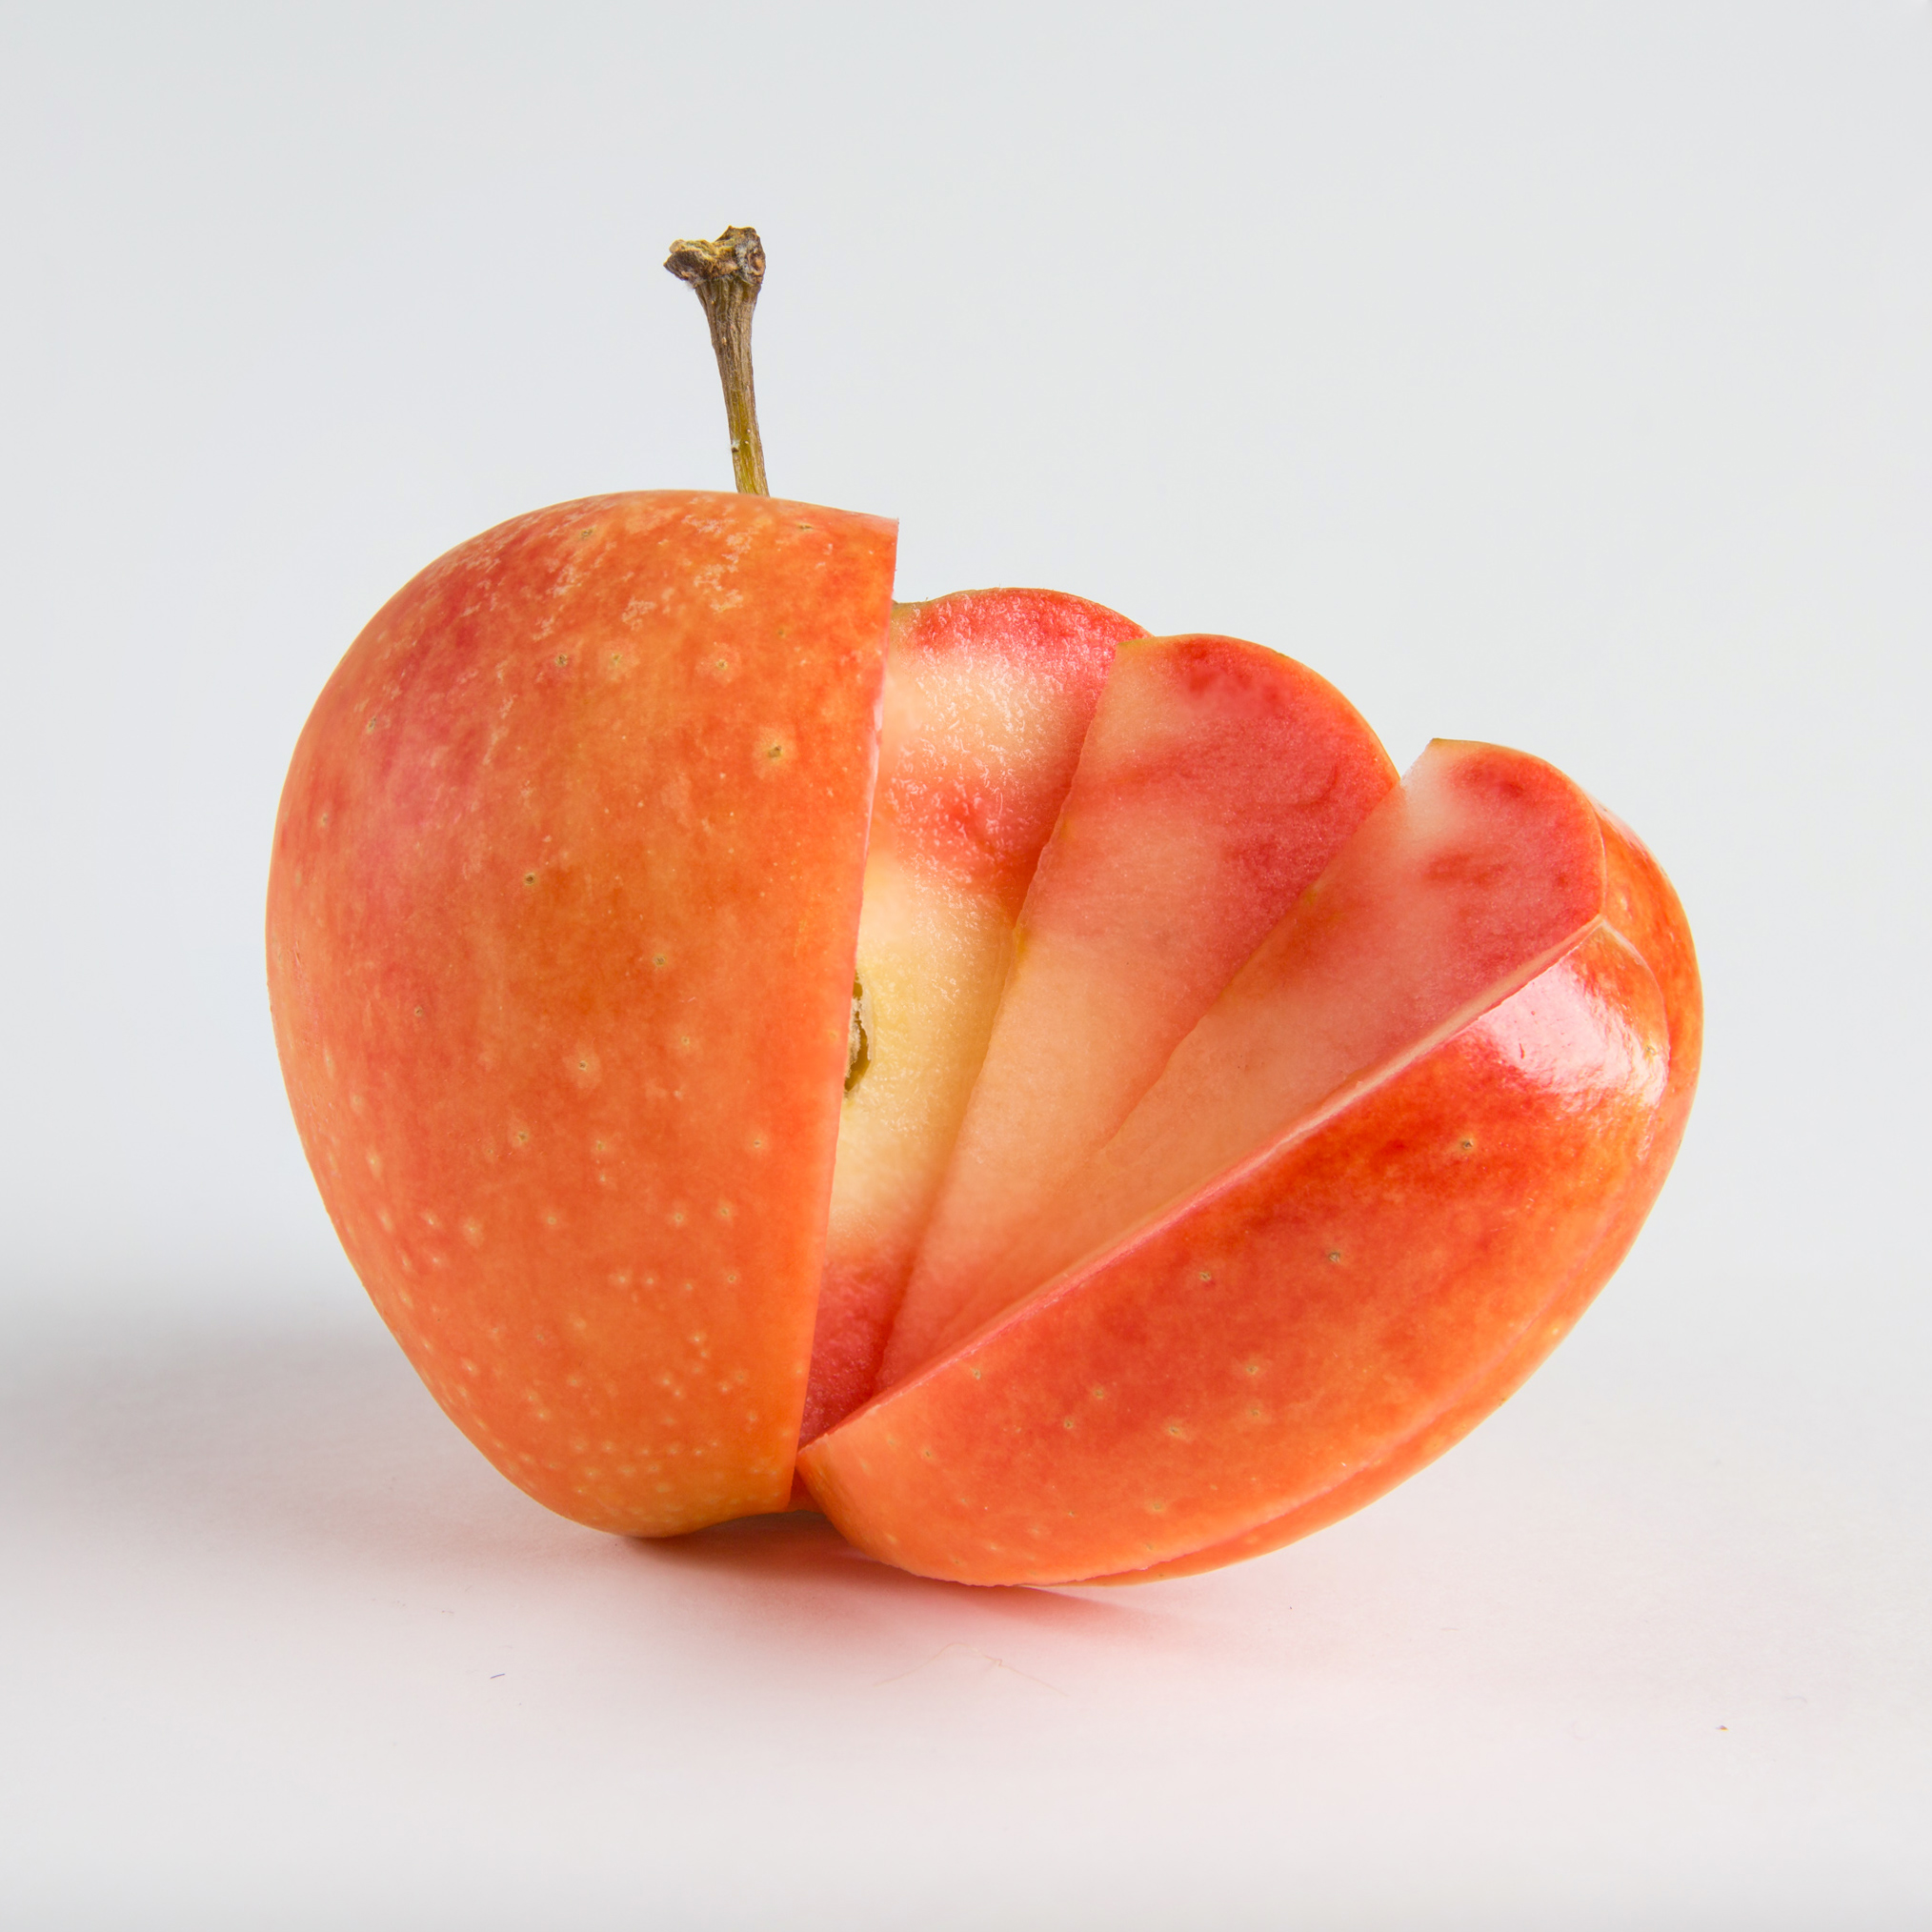 Sunburst , an orange-skinned pink-flesh apple with a deliciously tangy flavour